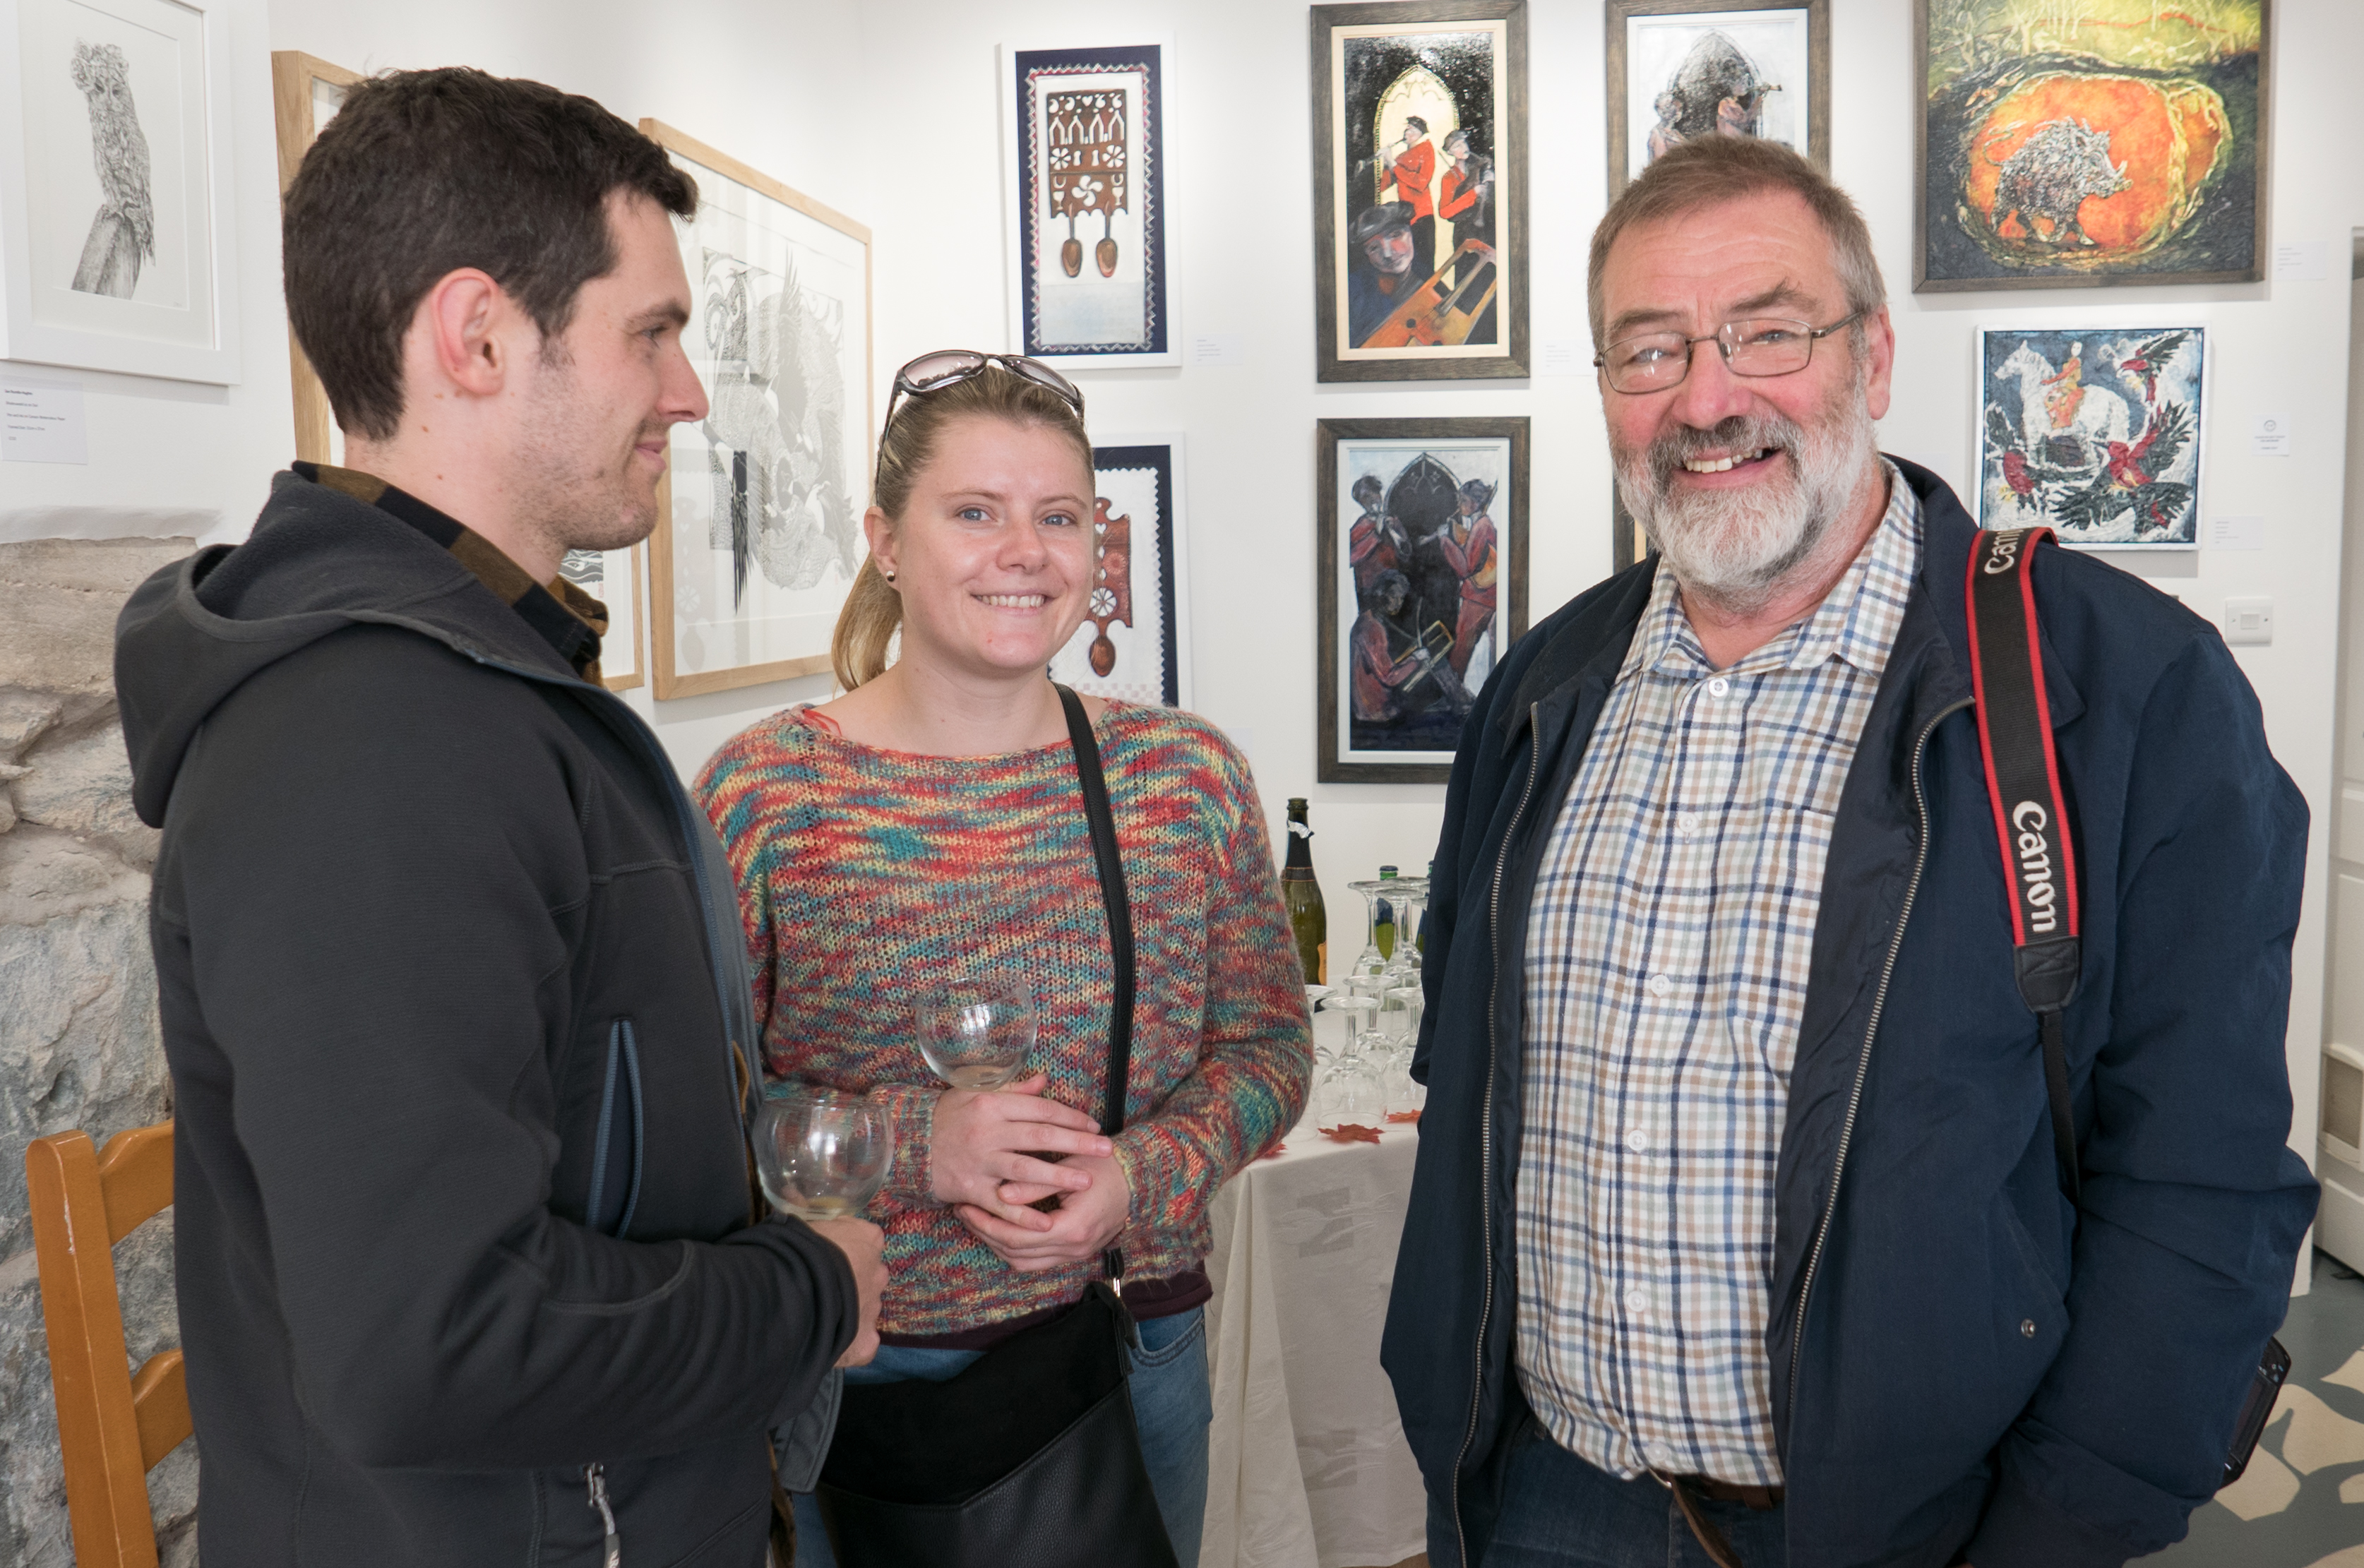 Woodturning artists - Miriam Jones with her partner and Les Symonds